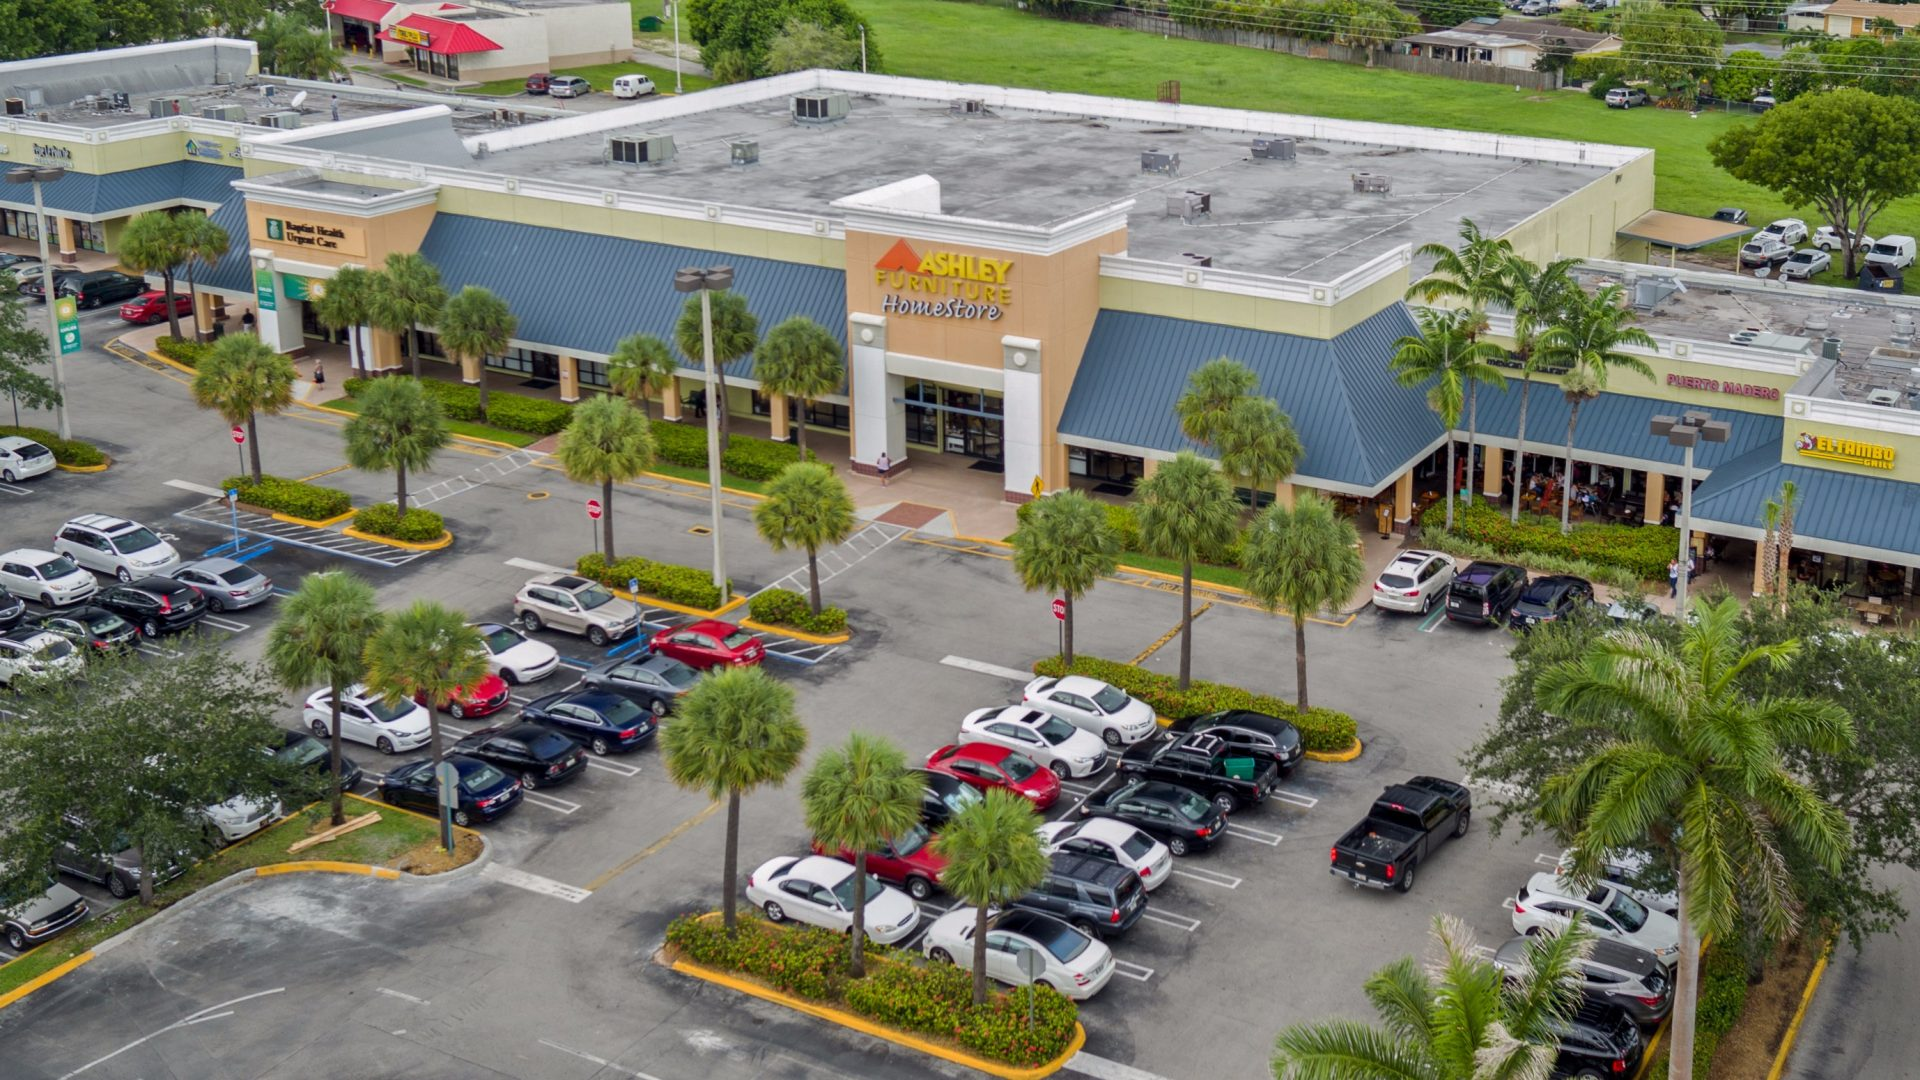 South Florida Commercial Real Estate Investment Fundamentals